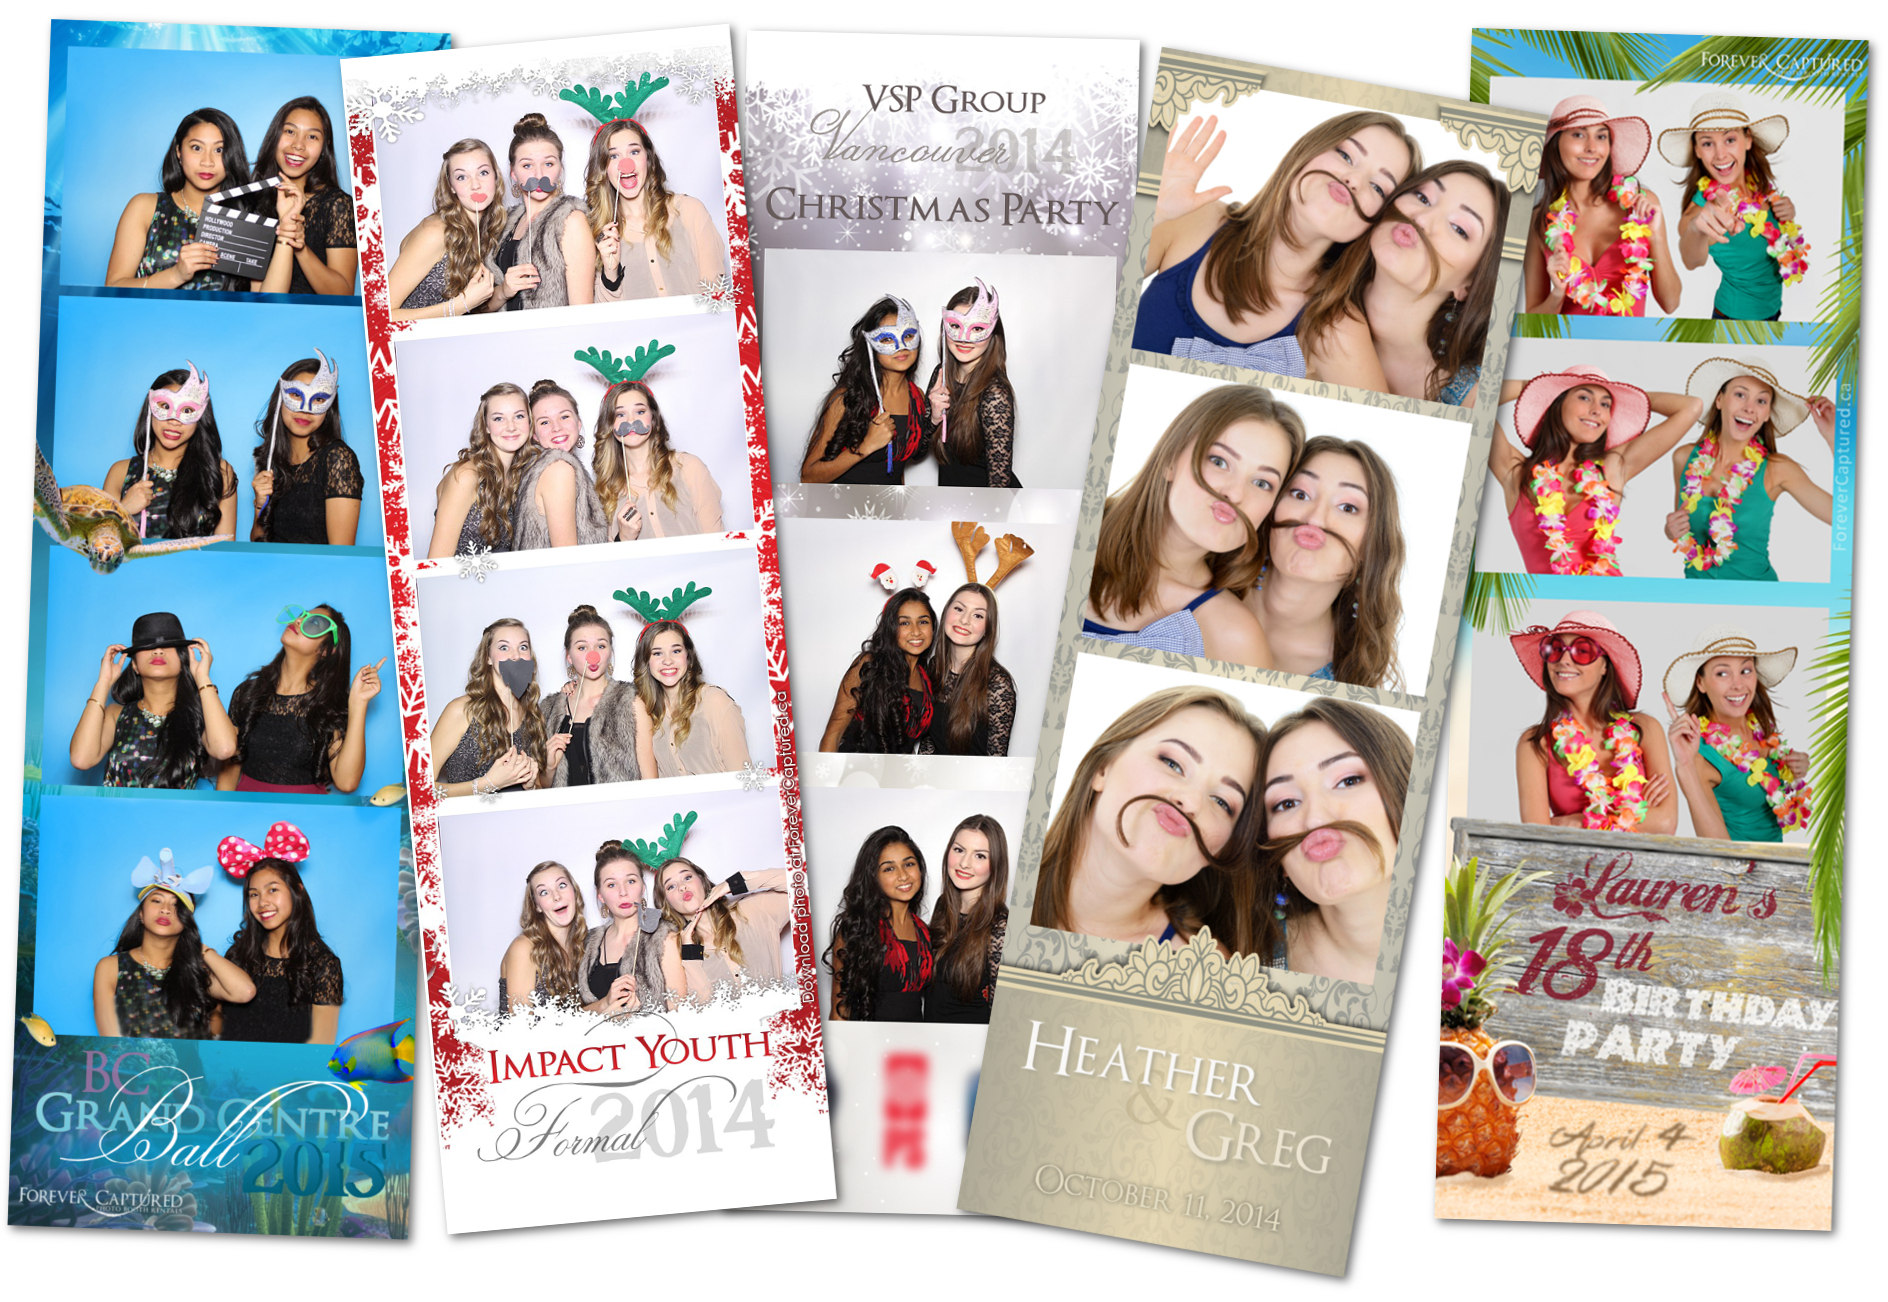 Sample photo layout prints from events in Greater Vancouver.